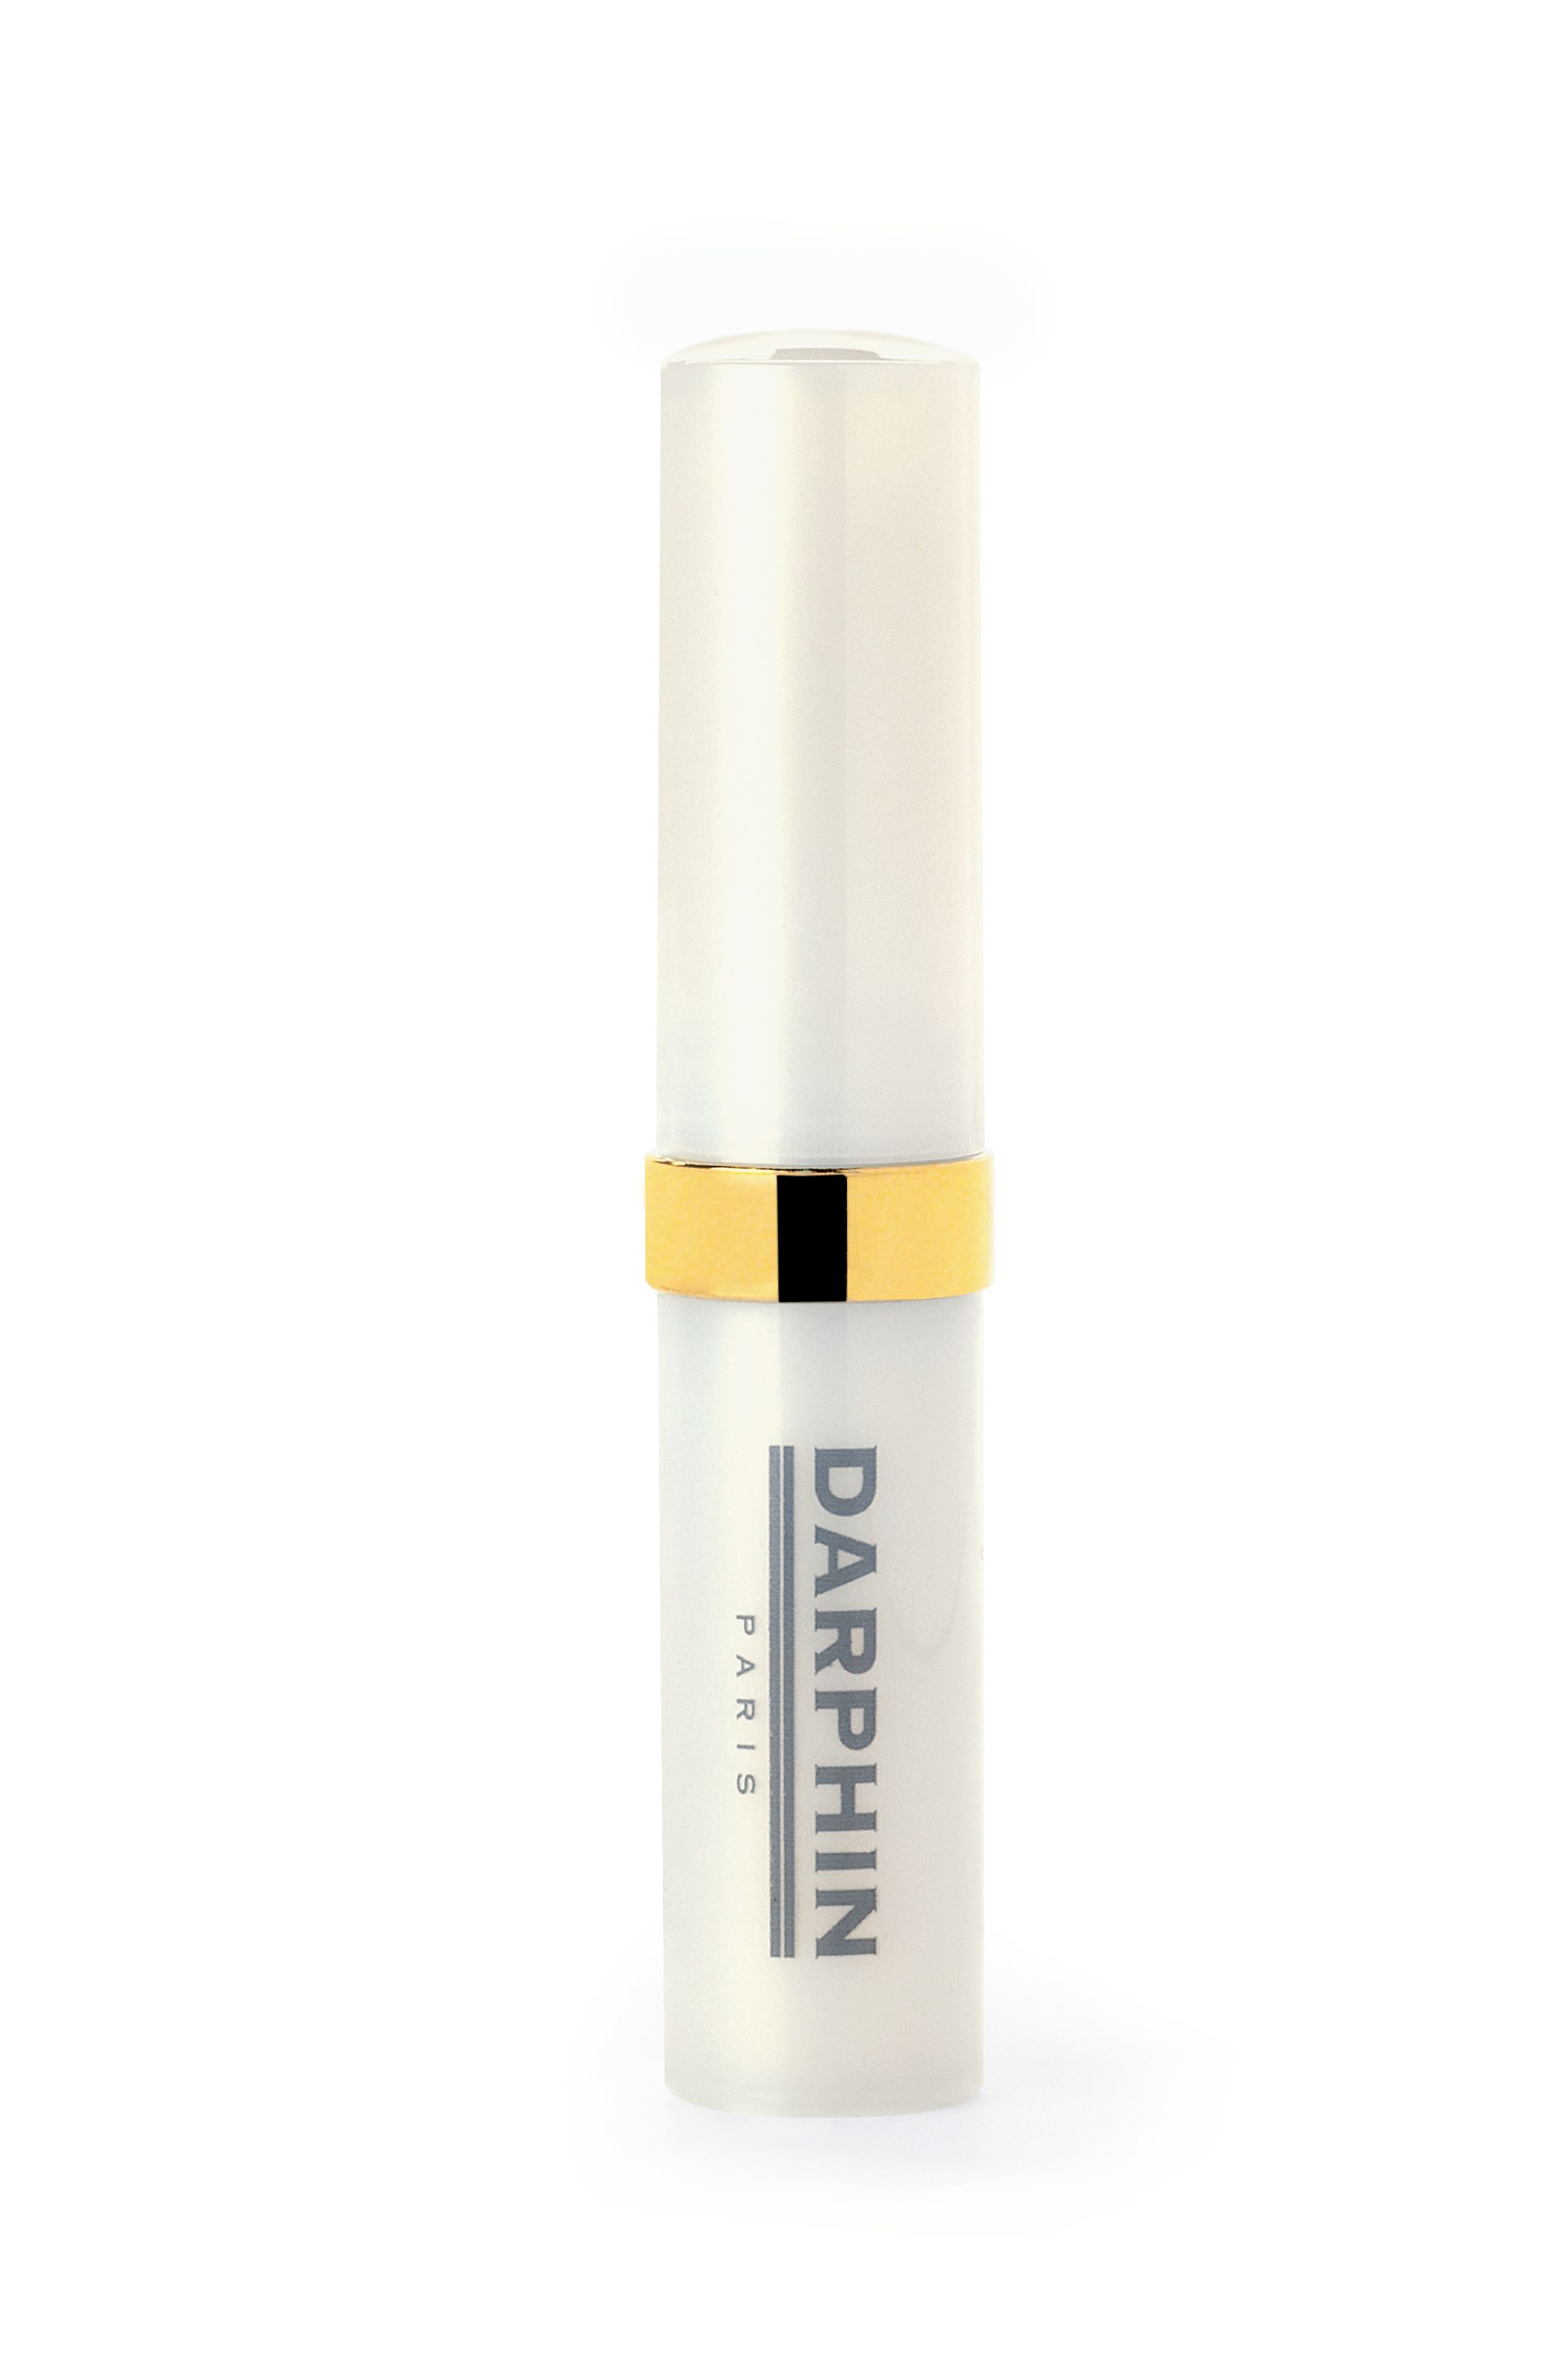 Darphin 1.5g Instantly radiant stick for eyes